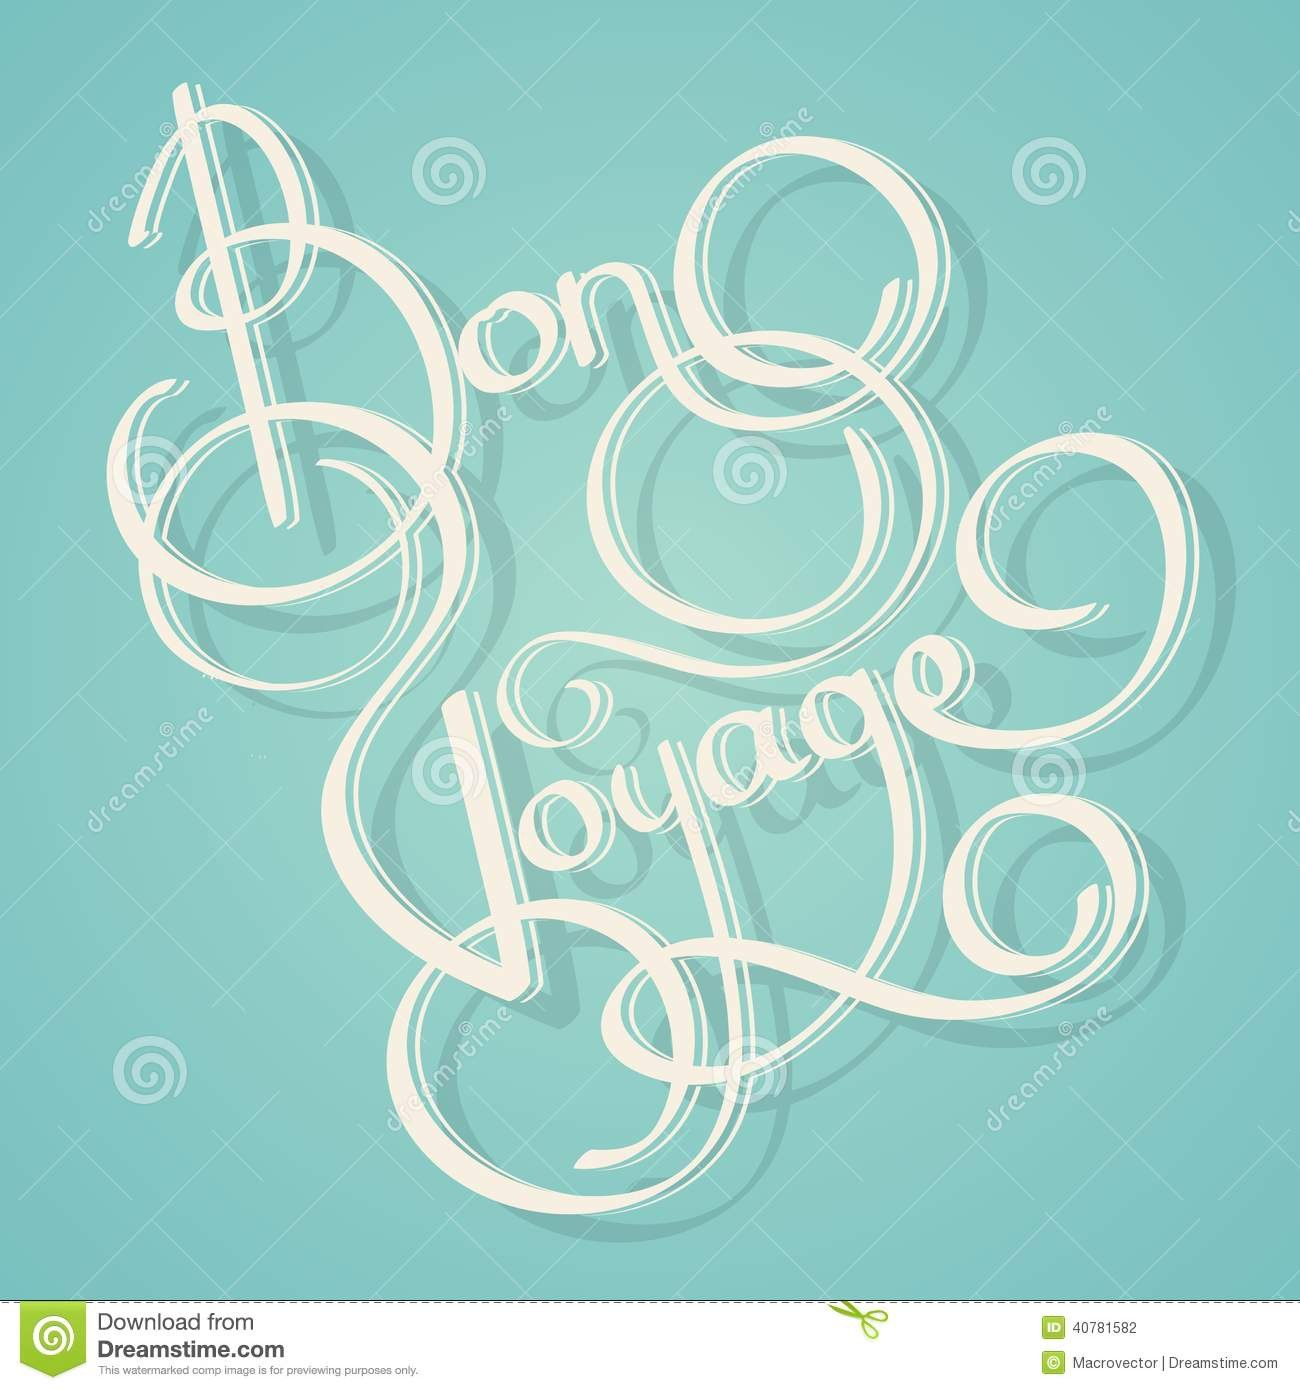 Calligraphy Bon Voyage Text Stock Vector  Illustration Of Postcard Within Bon Voyage Card Template